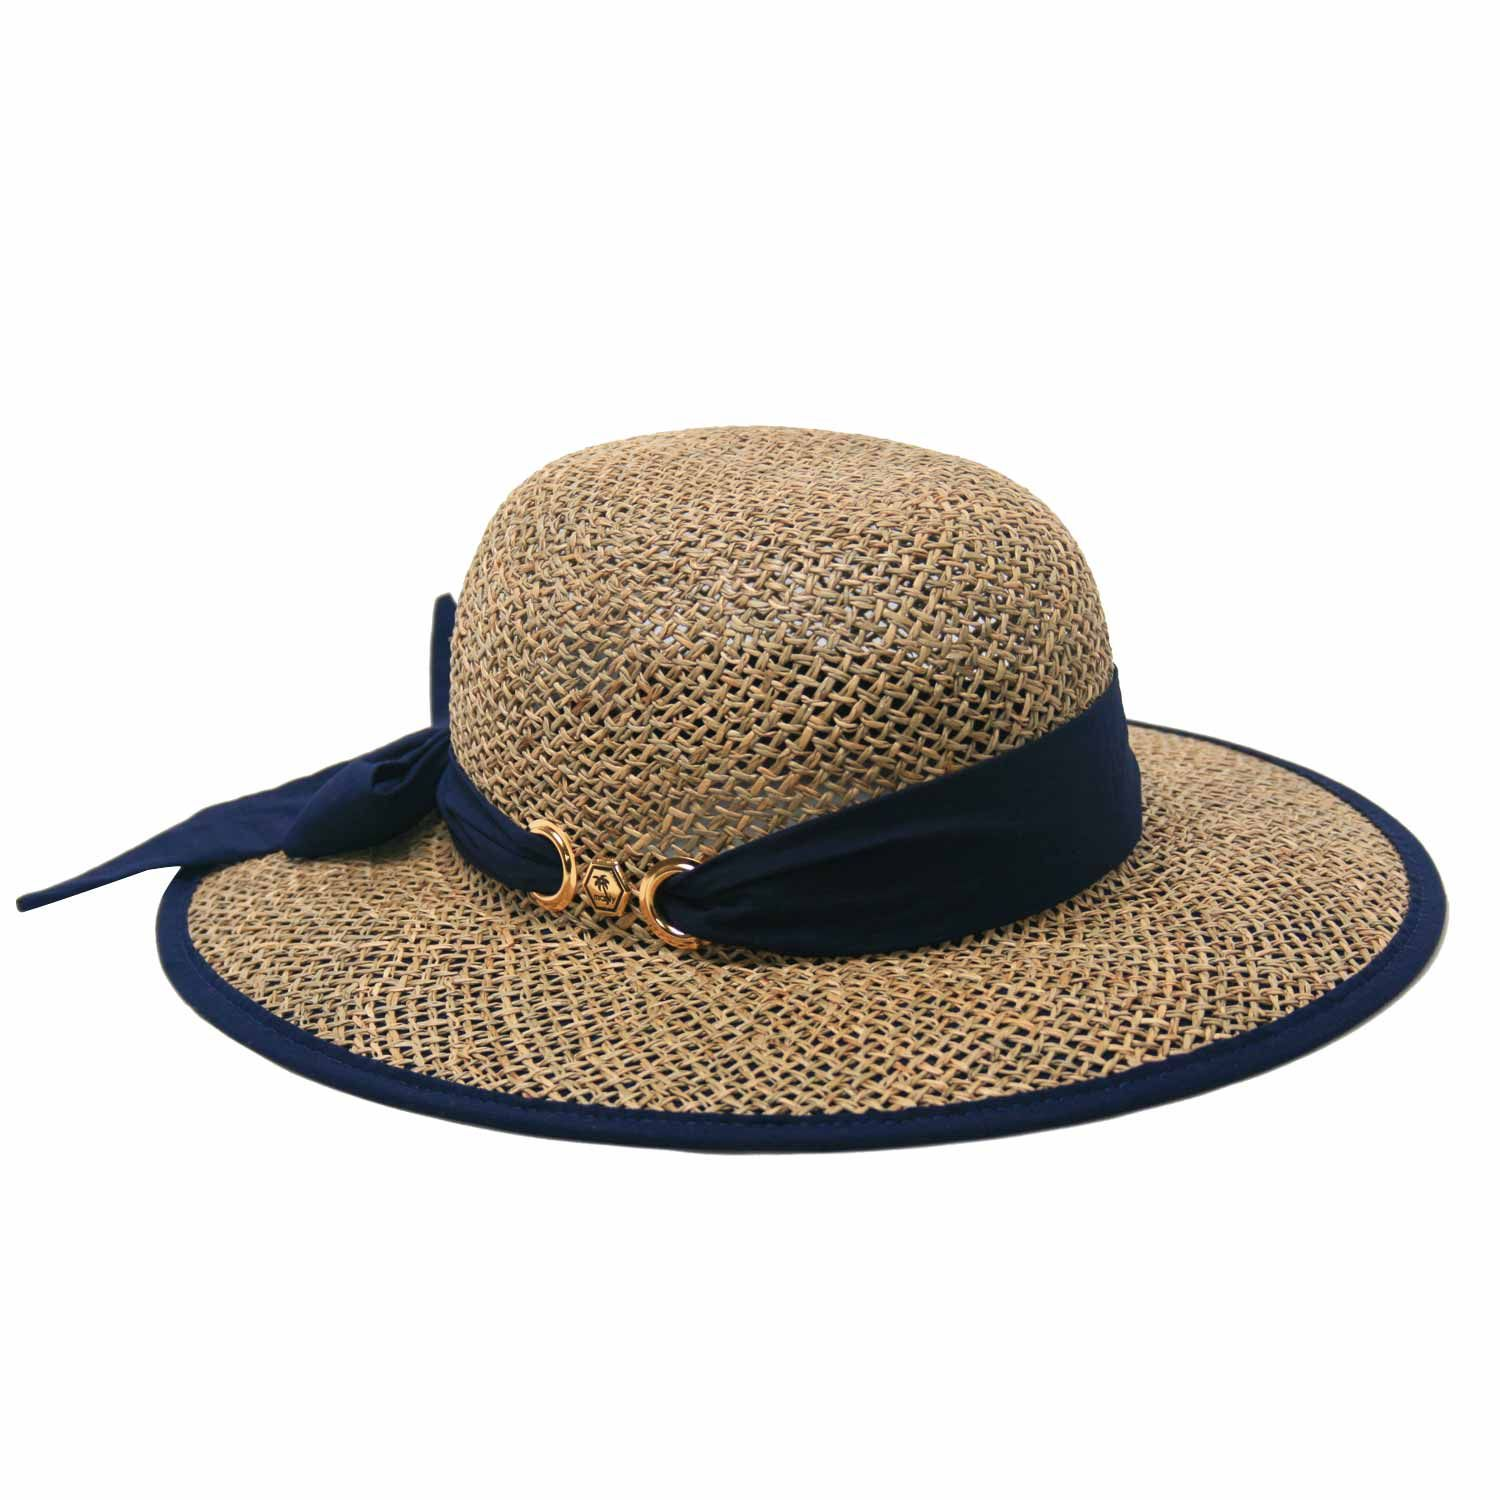 e7abad6ab75 HSS Hot Sale+Flat top straw hat Summer Spring women s trip caps leisure pearl  beach sun hats M letter breathable fashion flower - TakoFashion - Women s  ...